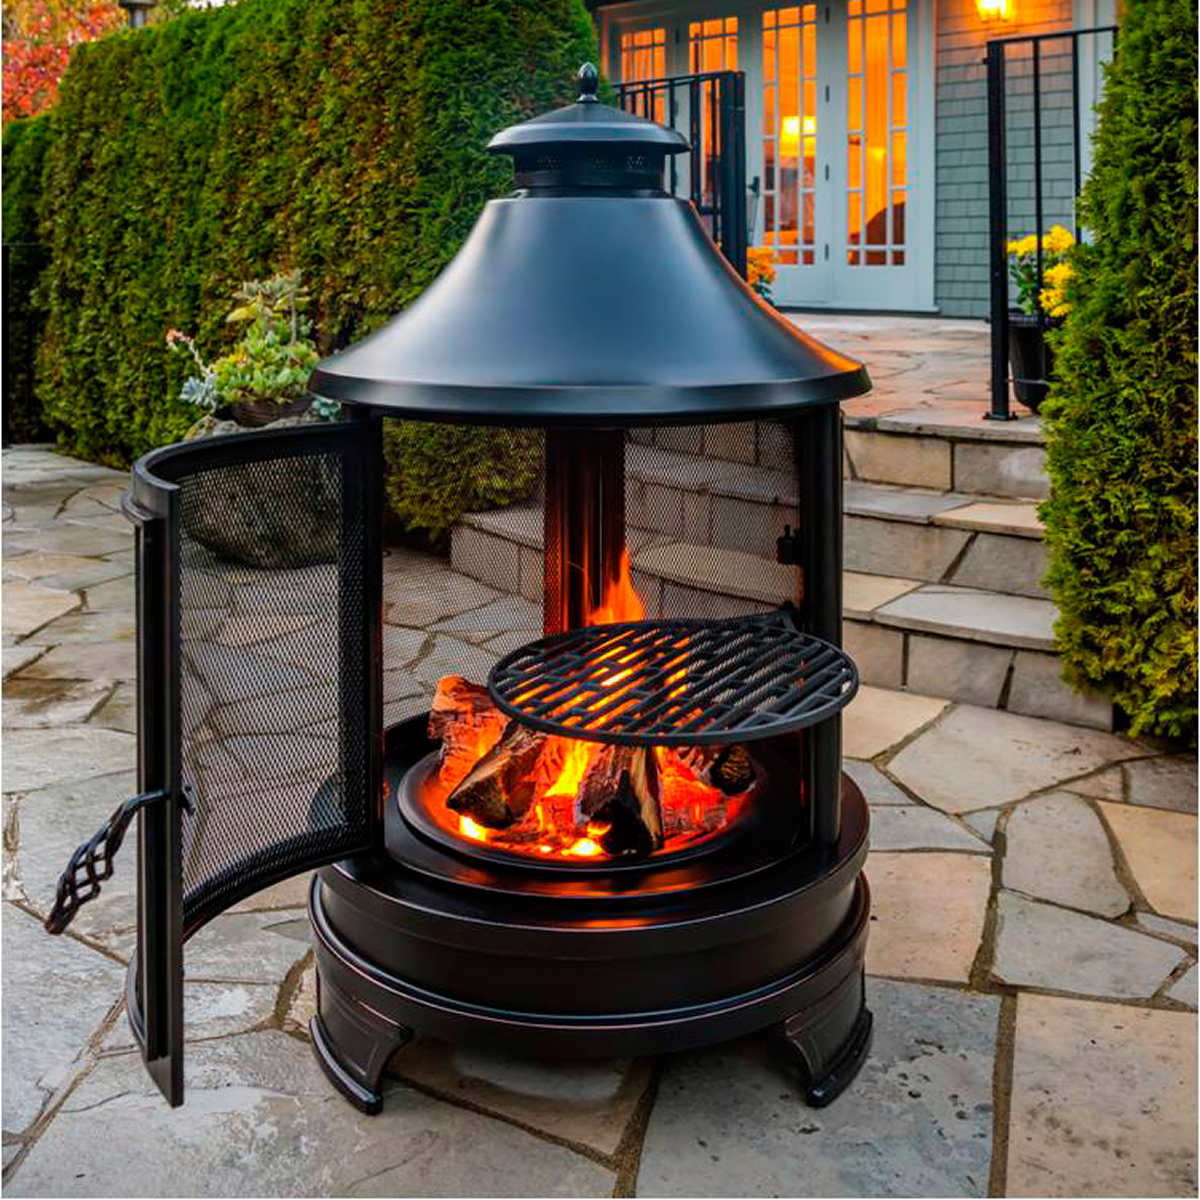 Outdoor Wood Burning Round Cooking Pit - Fire Pit